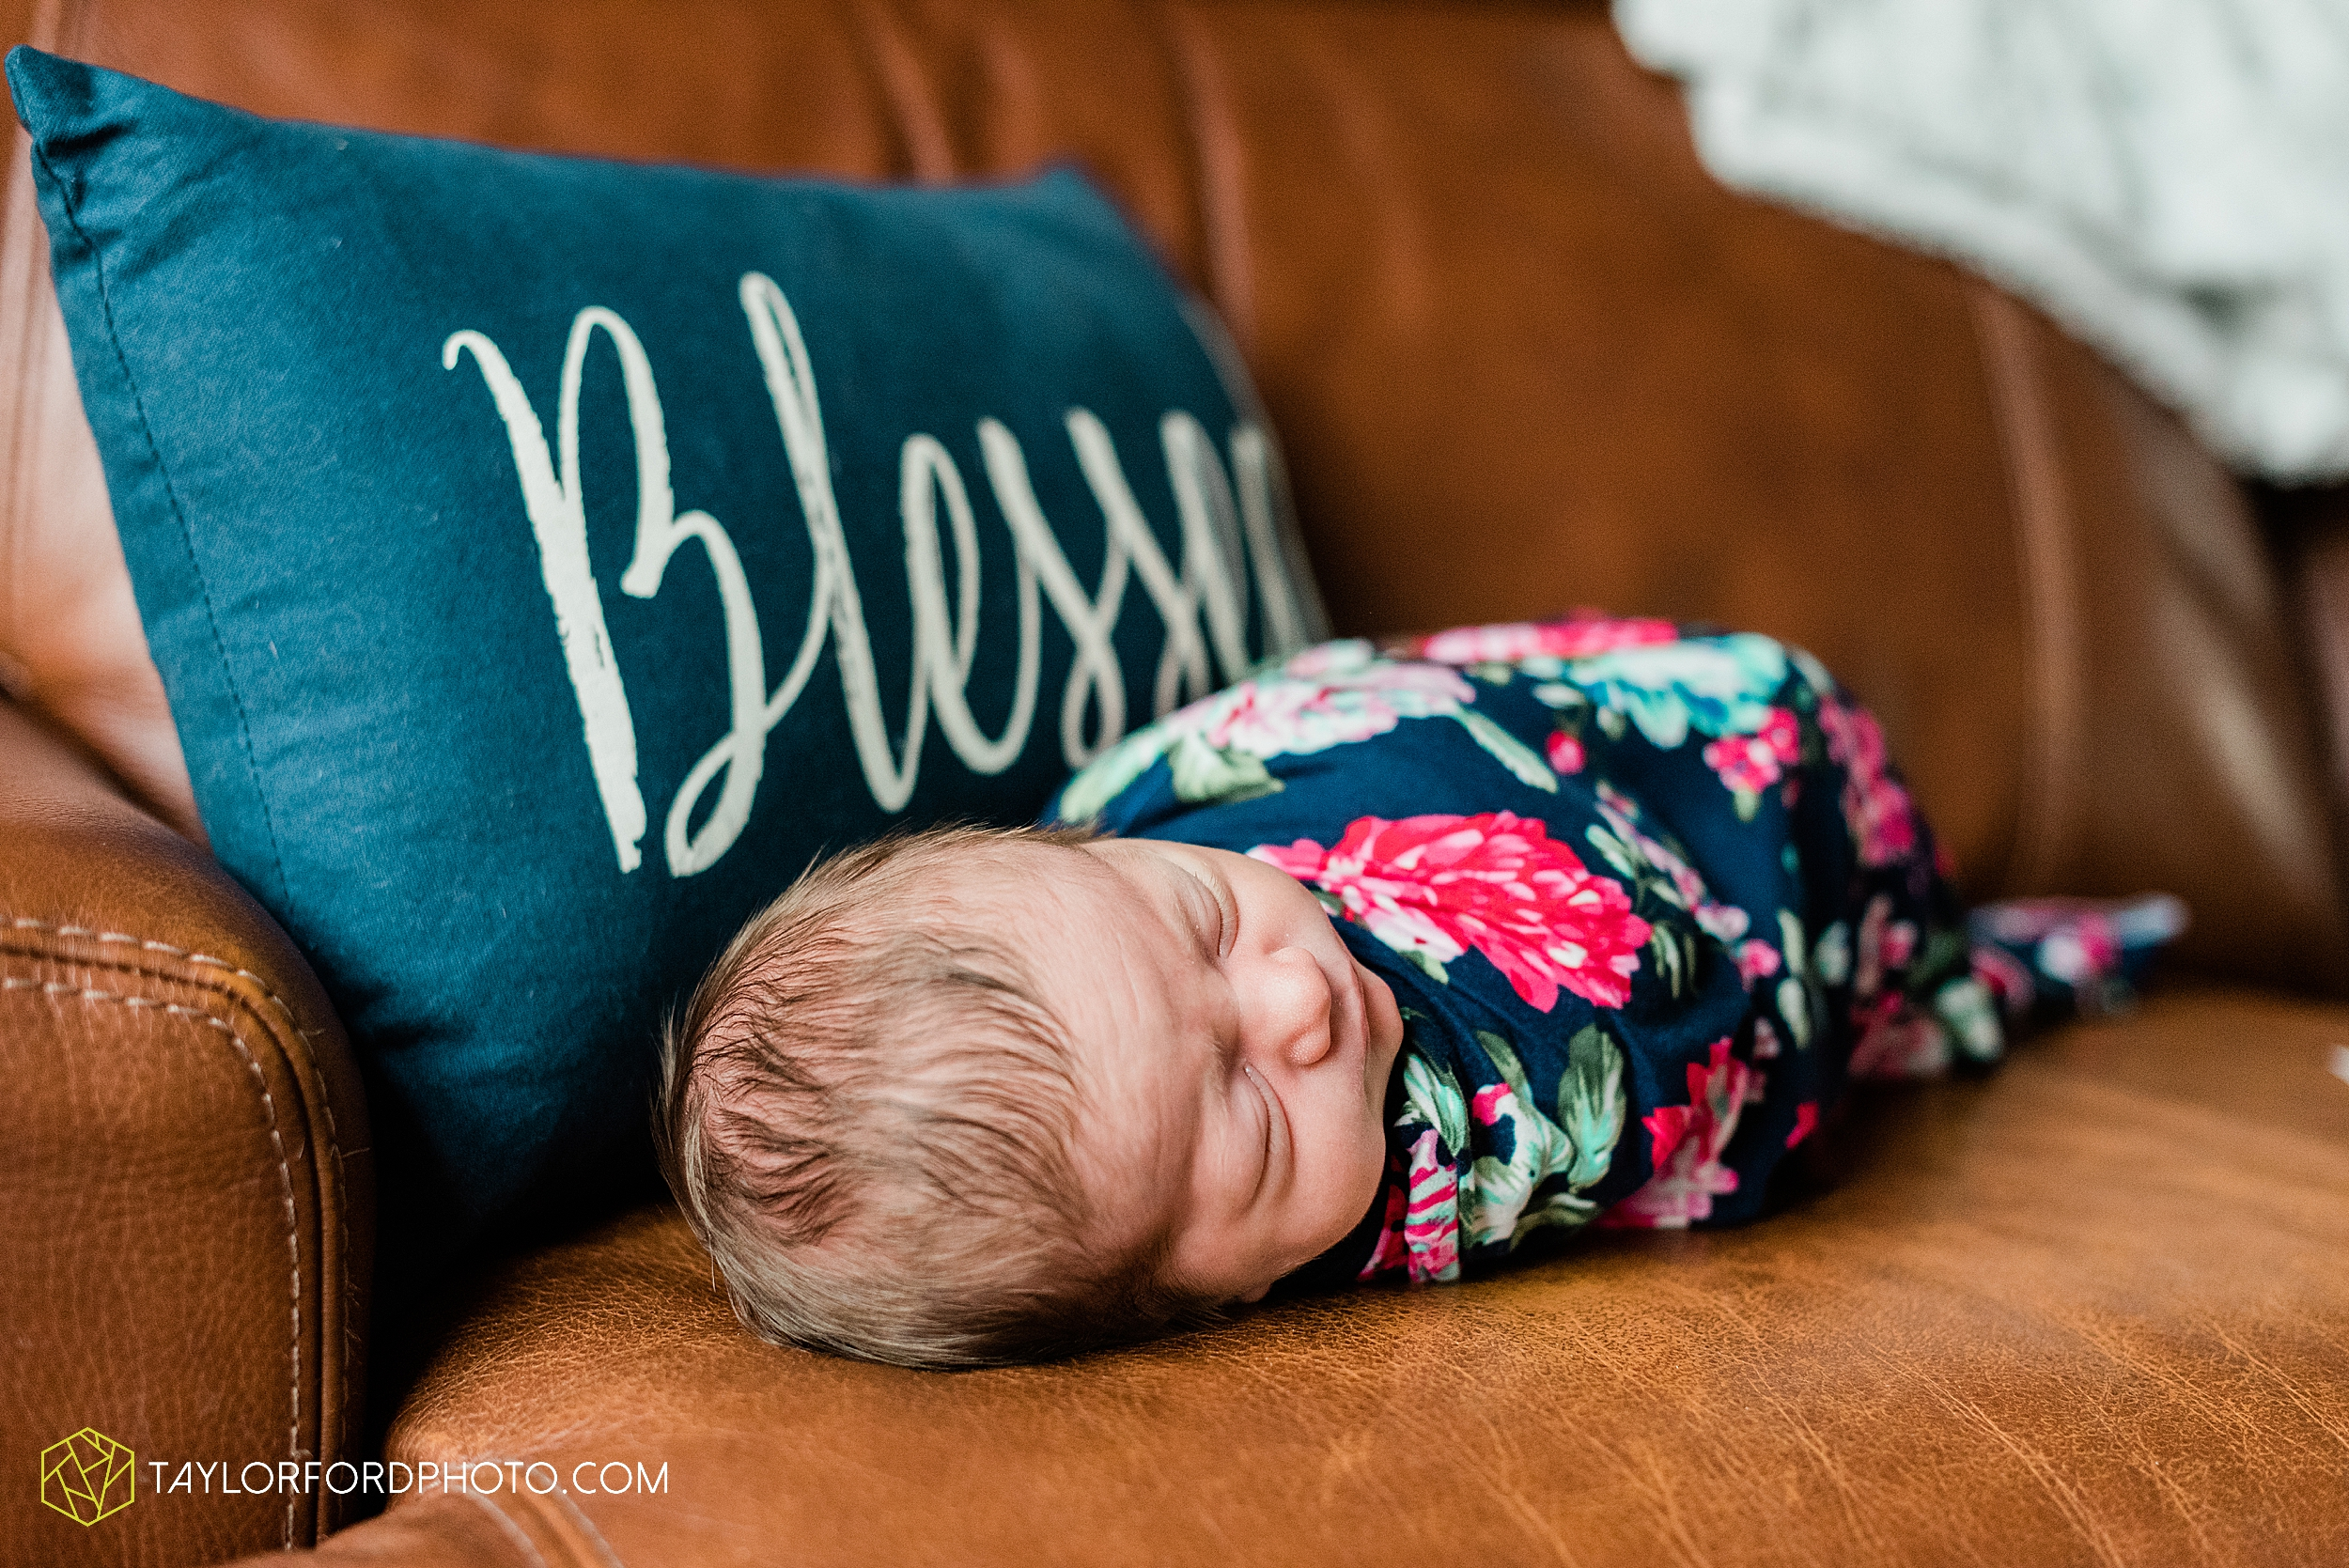 ashley-aaron-noraa-lifestyle-at-home-family-newborn-blacklick-columbus-ohio-photography-taylor-ford-hirschy-photographer_2349.jpg